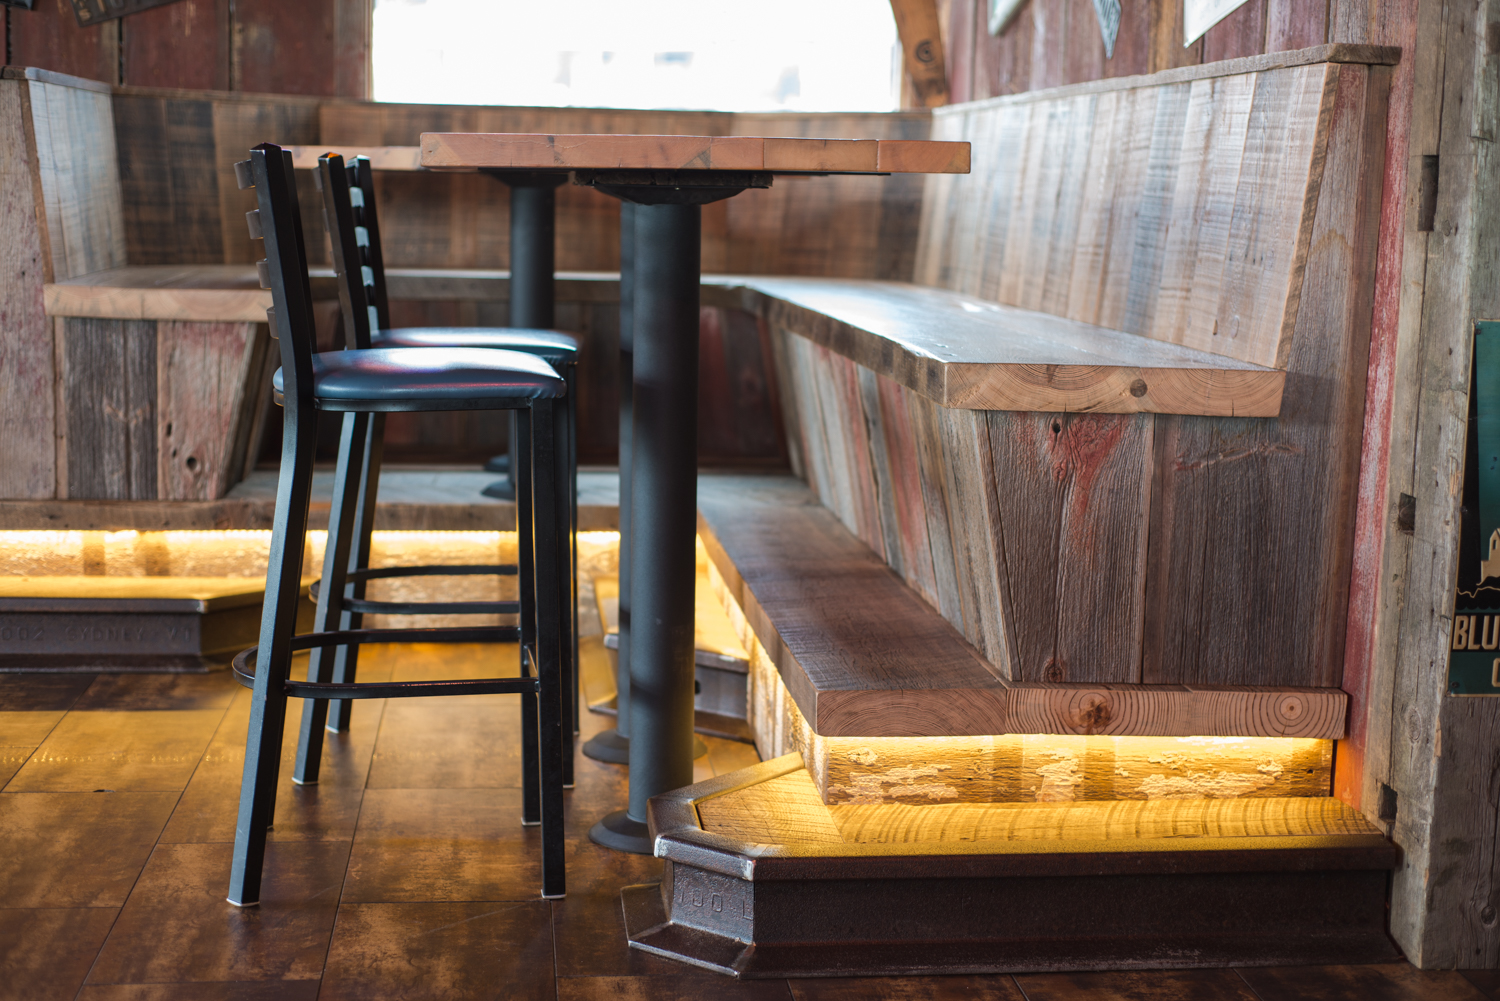 A variety of authentically weathered barn wood planks anchor the vintage design of Harpoon Willie's dining booths.